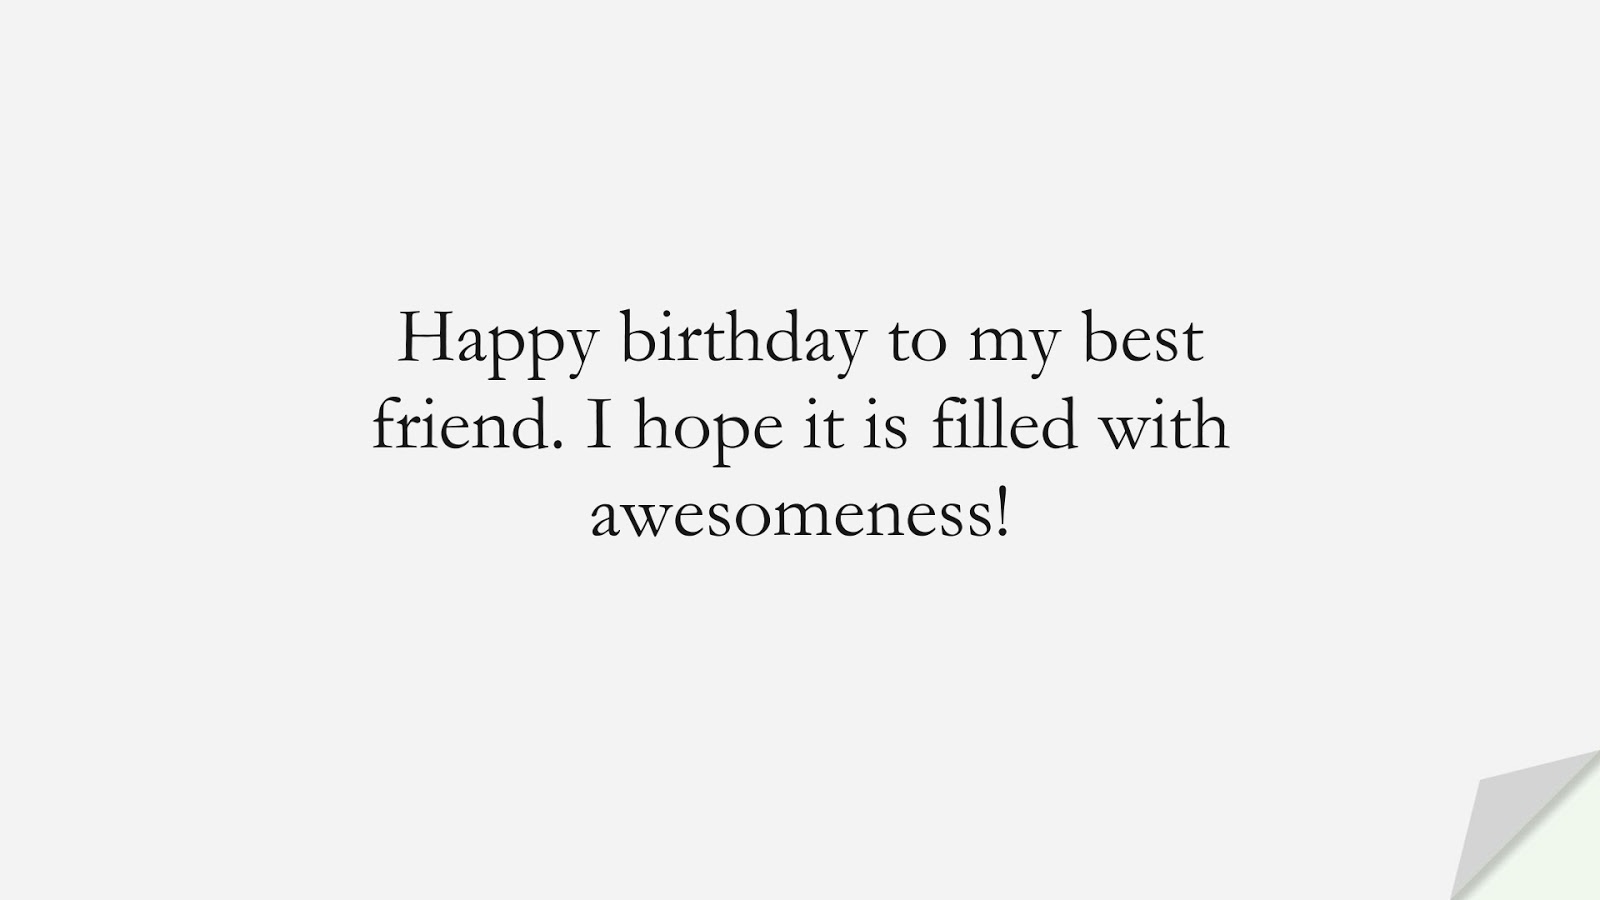 Happy birthday to my best friend. I hope it is filled with awesomeness!FALSE